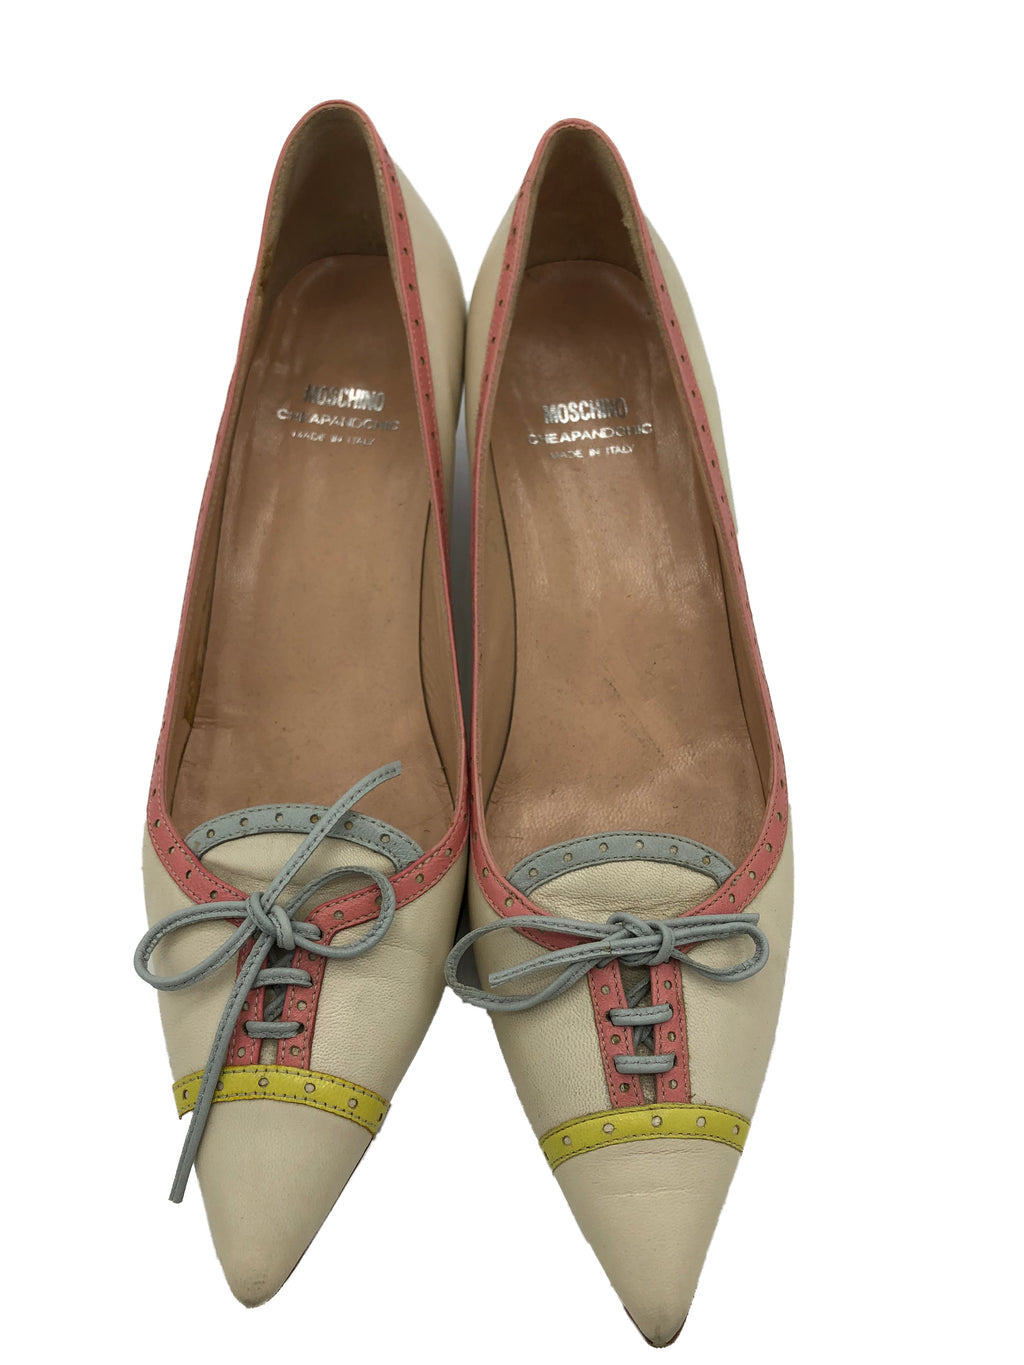 0s Moschino Cheap and Chic Pastel Kitten Heeled Pumps 1 of 4